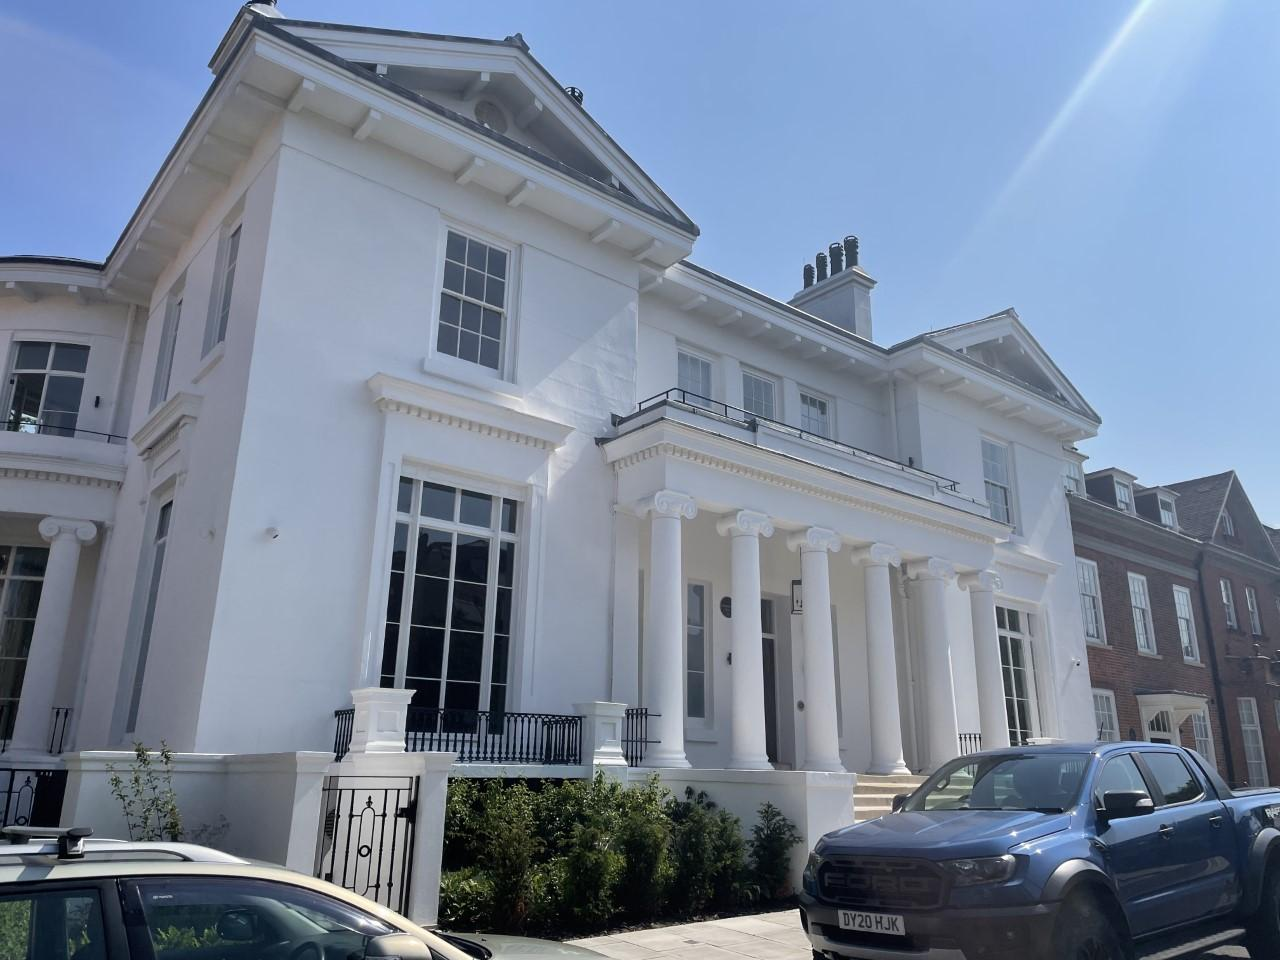 PTSG completes high-level project at Hampstead Manor